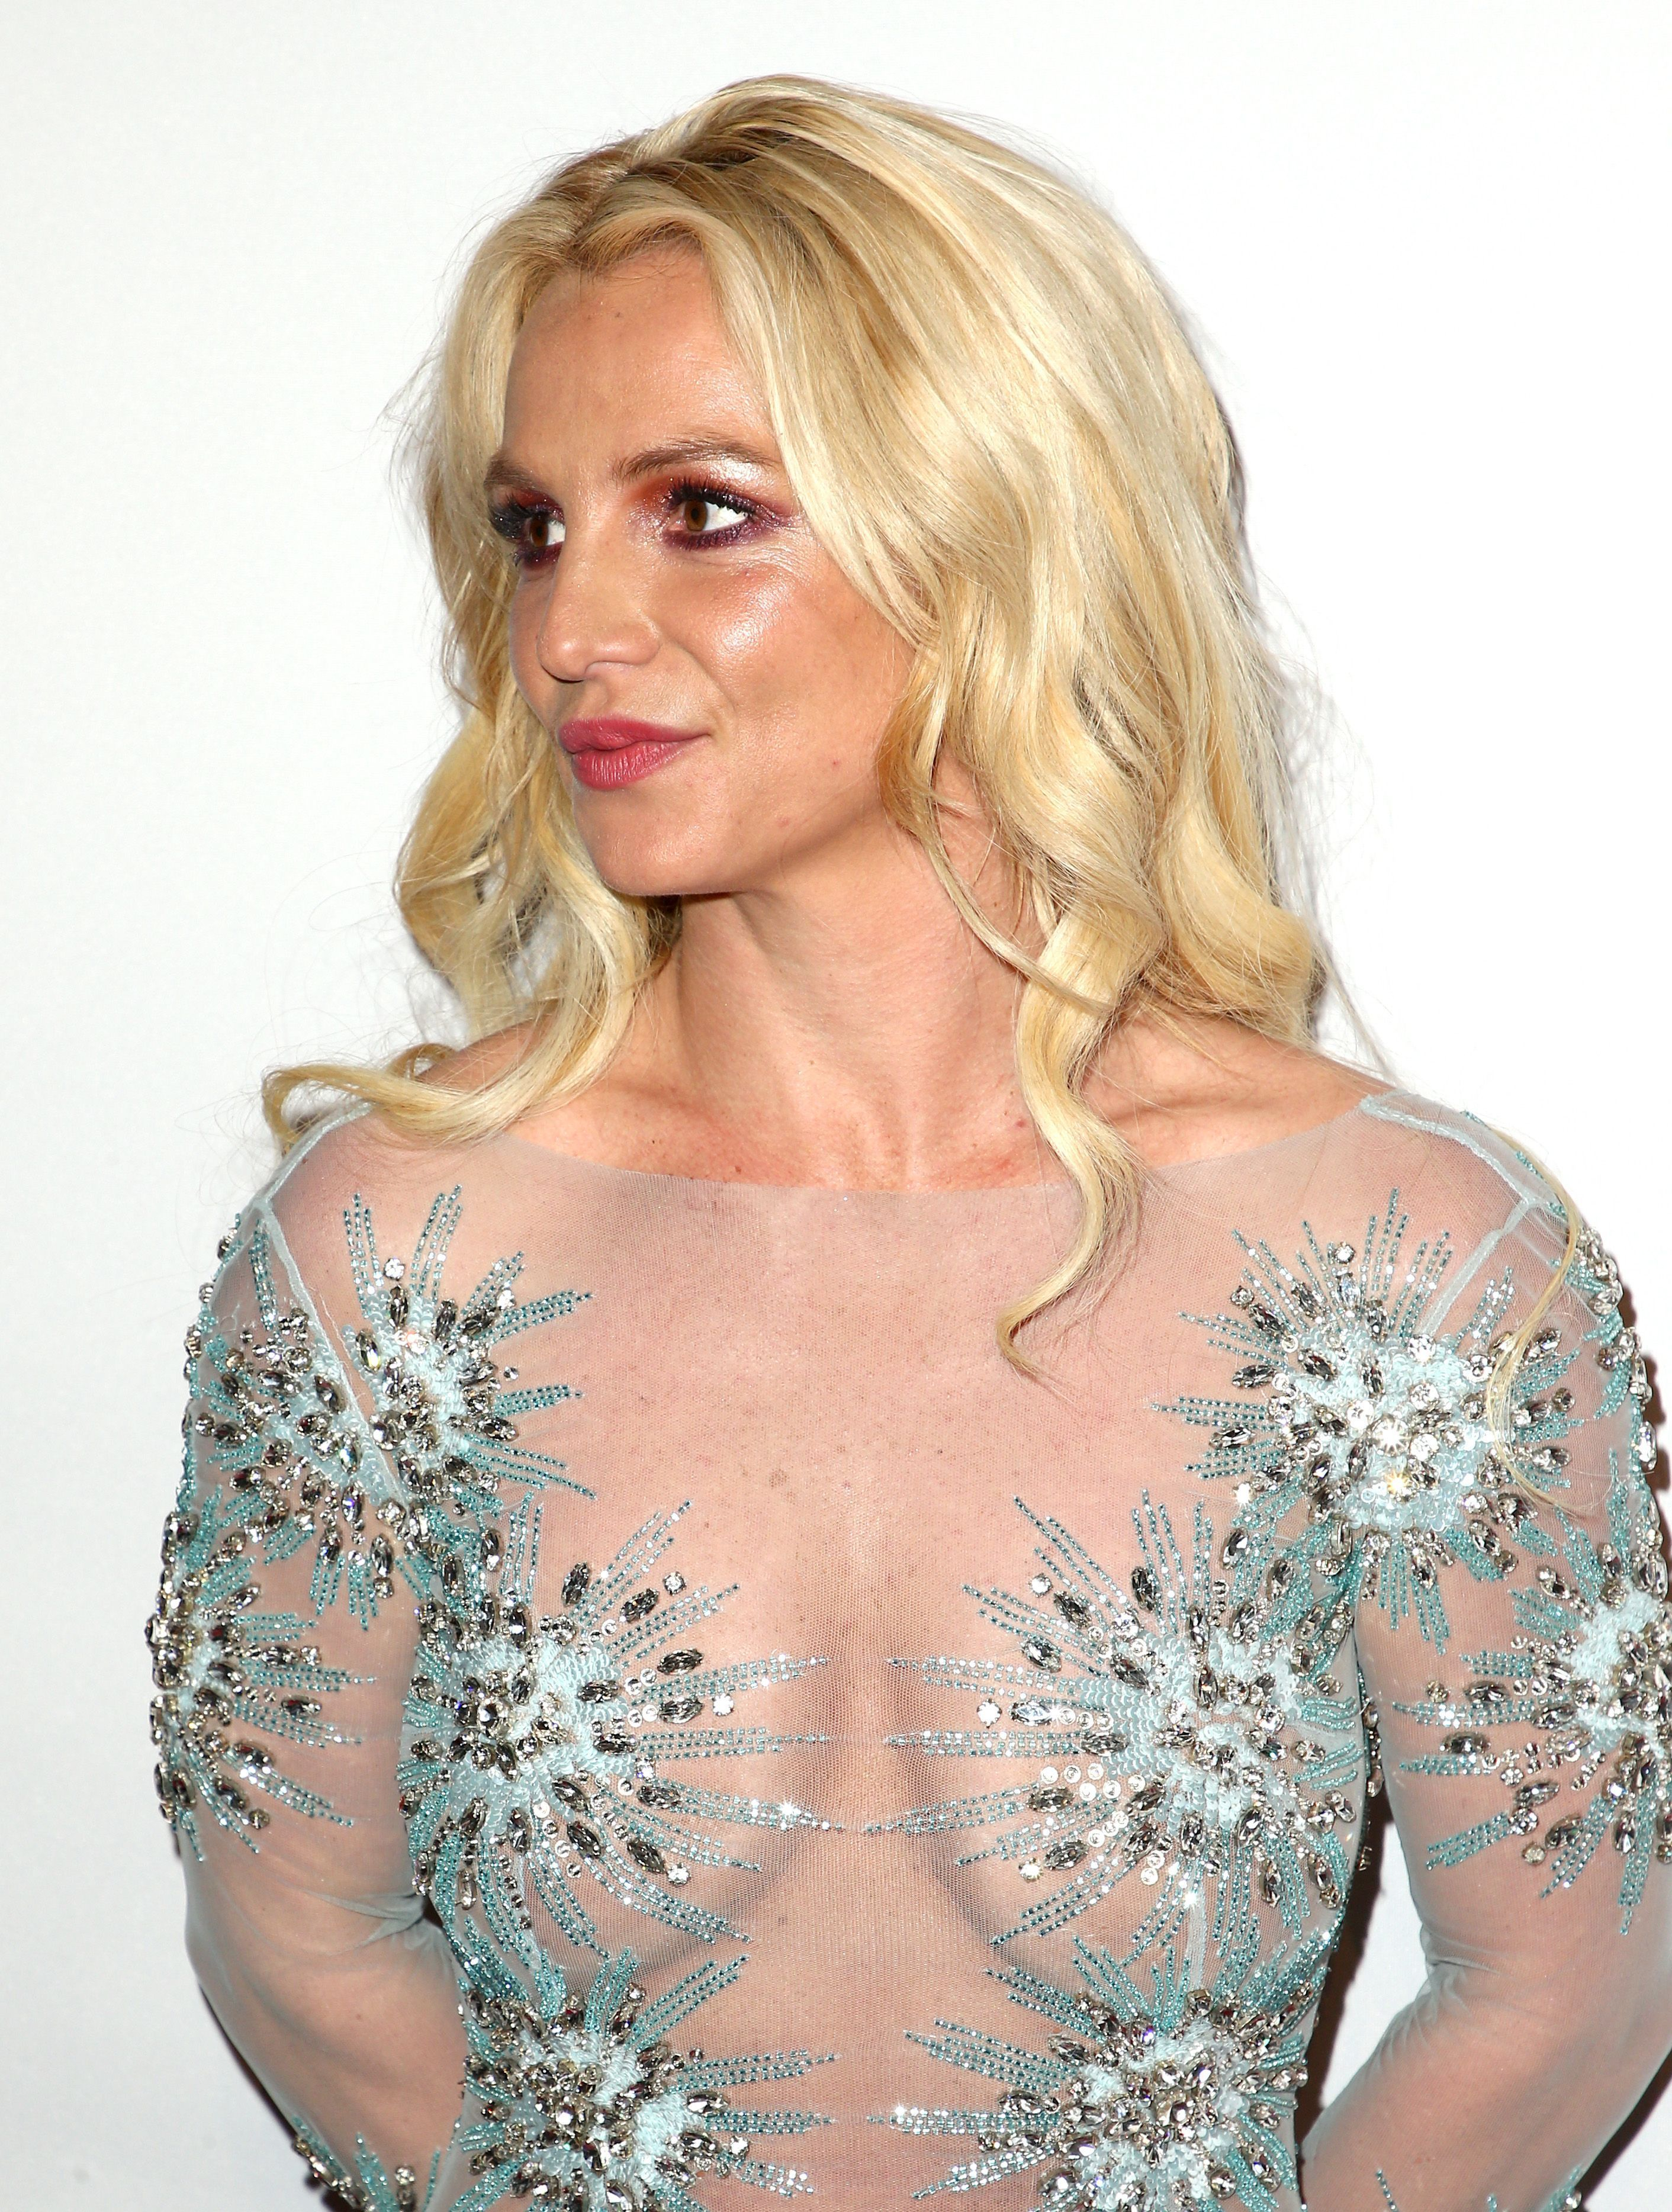 Porm celebrity hairstyles - Britney Spears Seethru To Boobs At Clive Davis Pre Grammy Party In La Video Celebrities